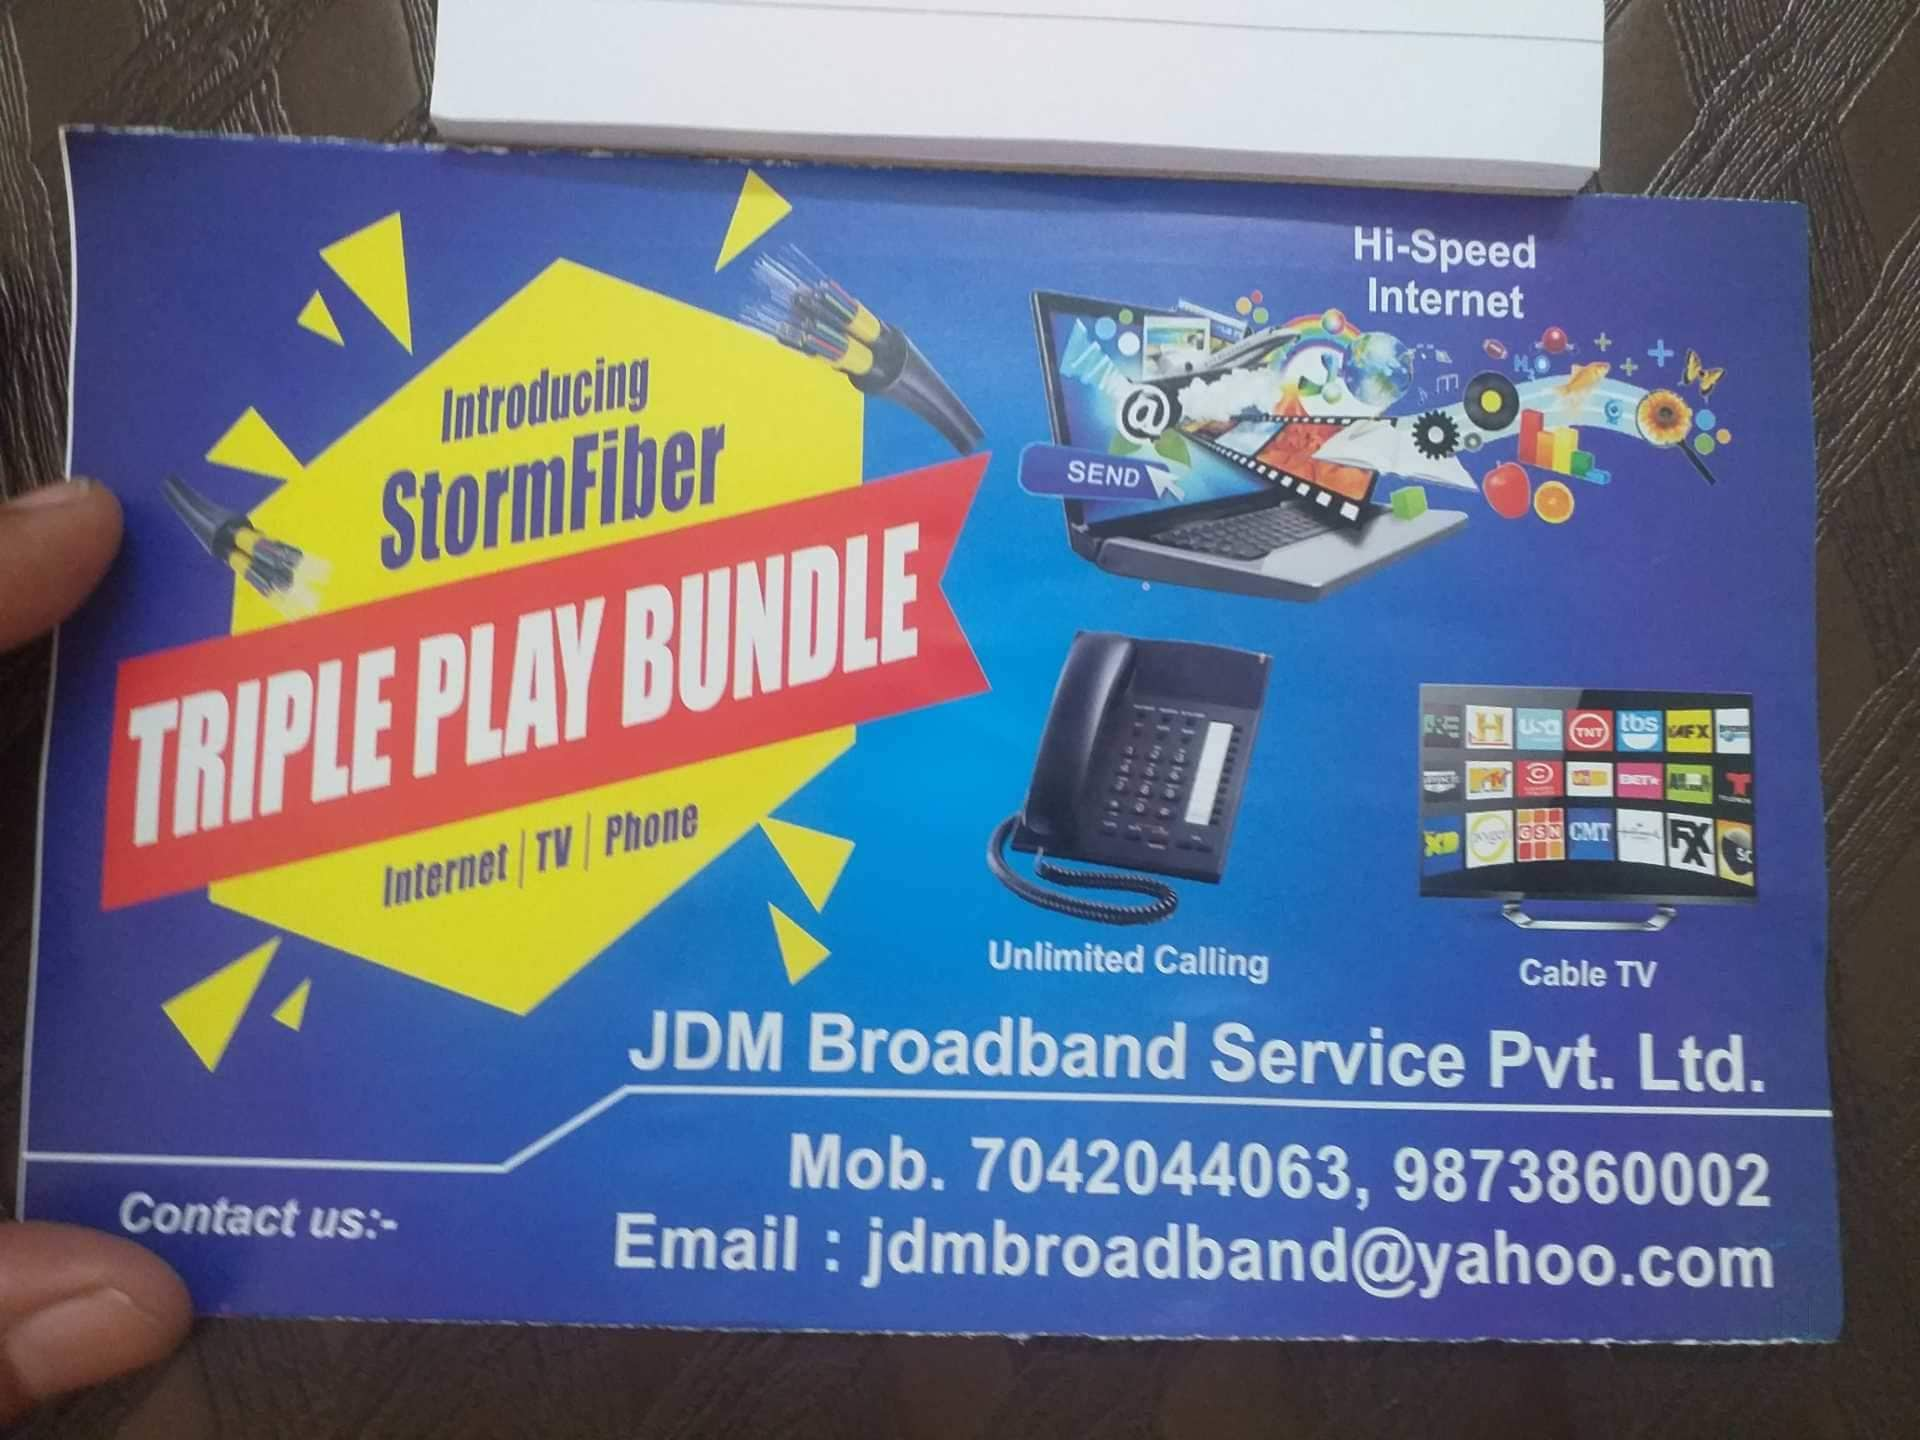 Top Broadband Services in Mangolpuri Industrial Area Phase 2